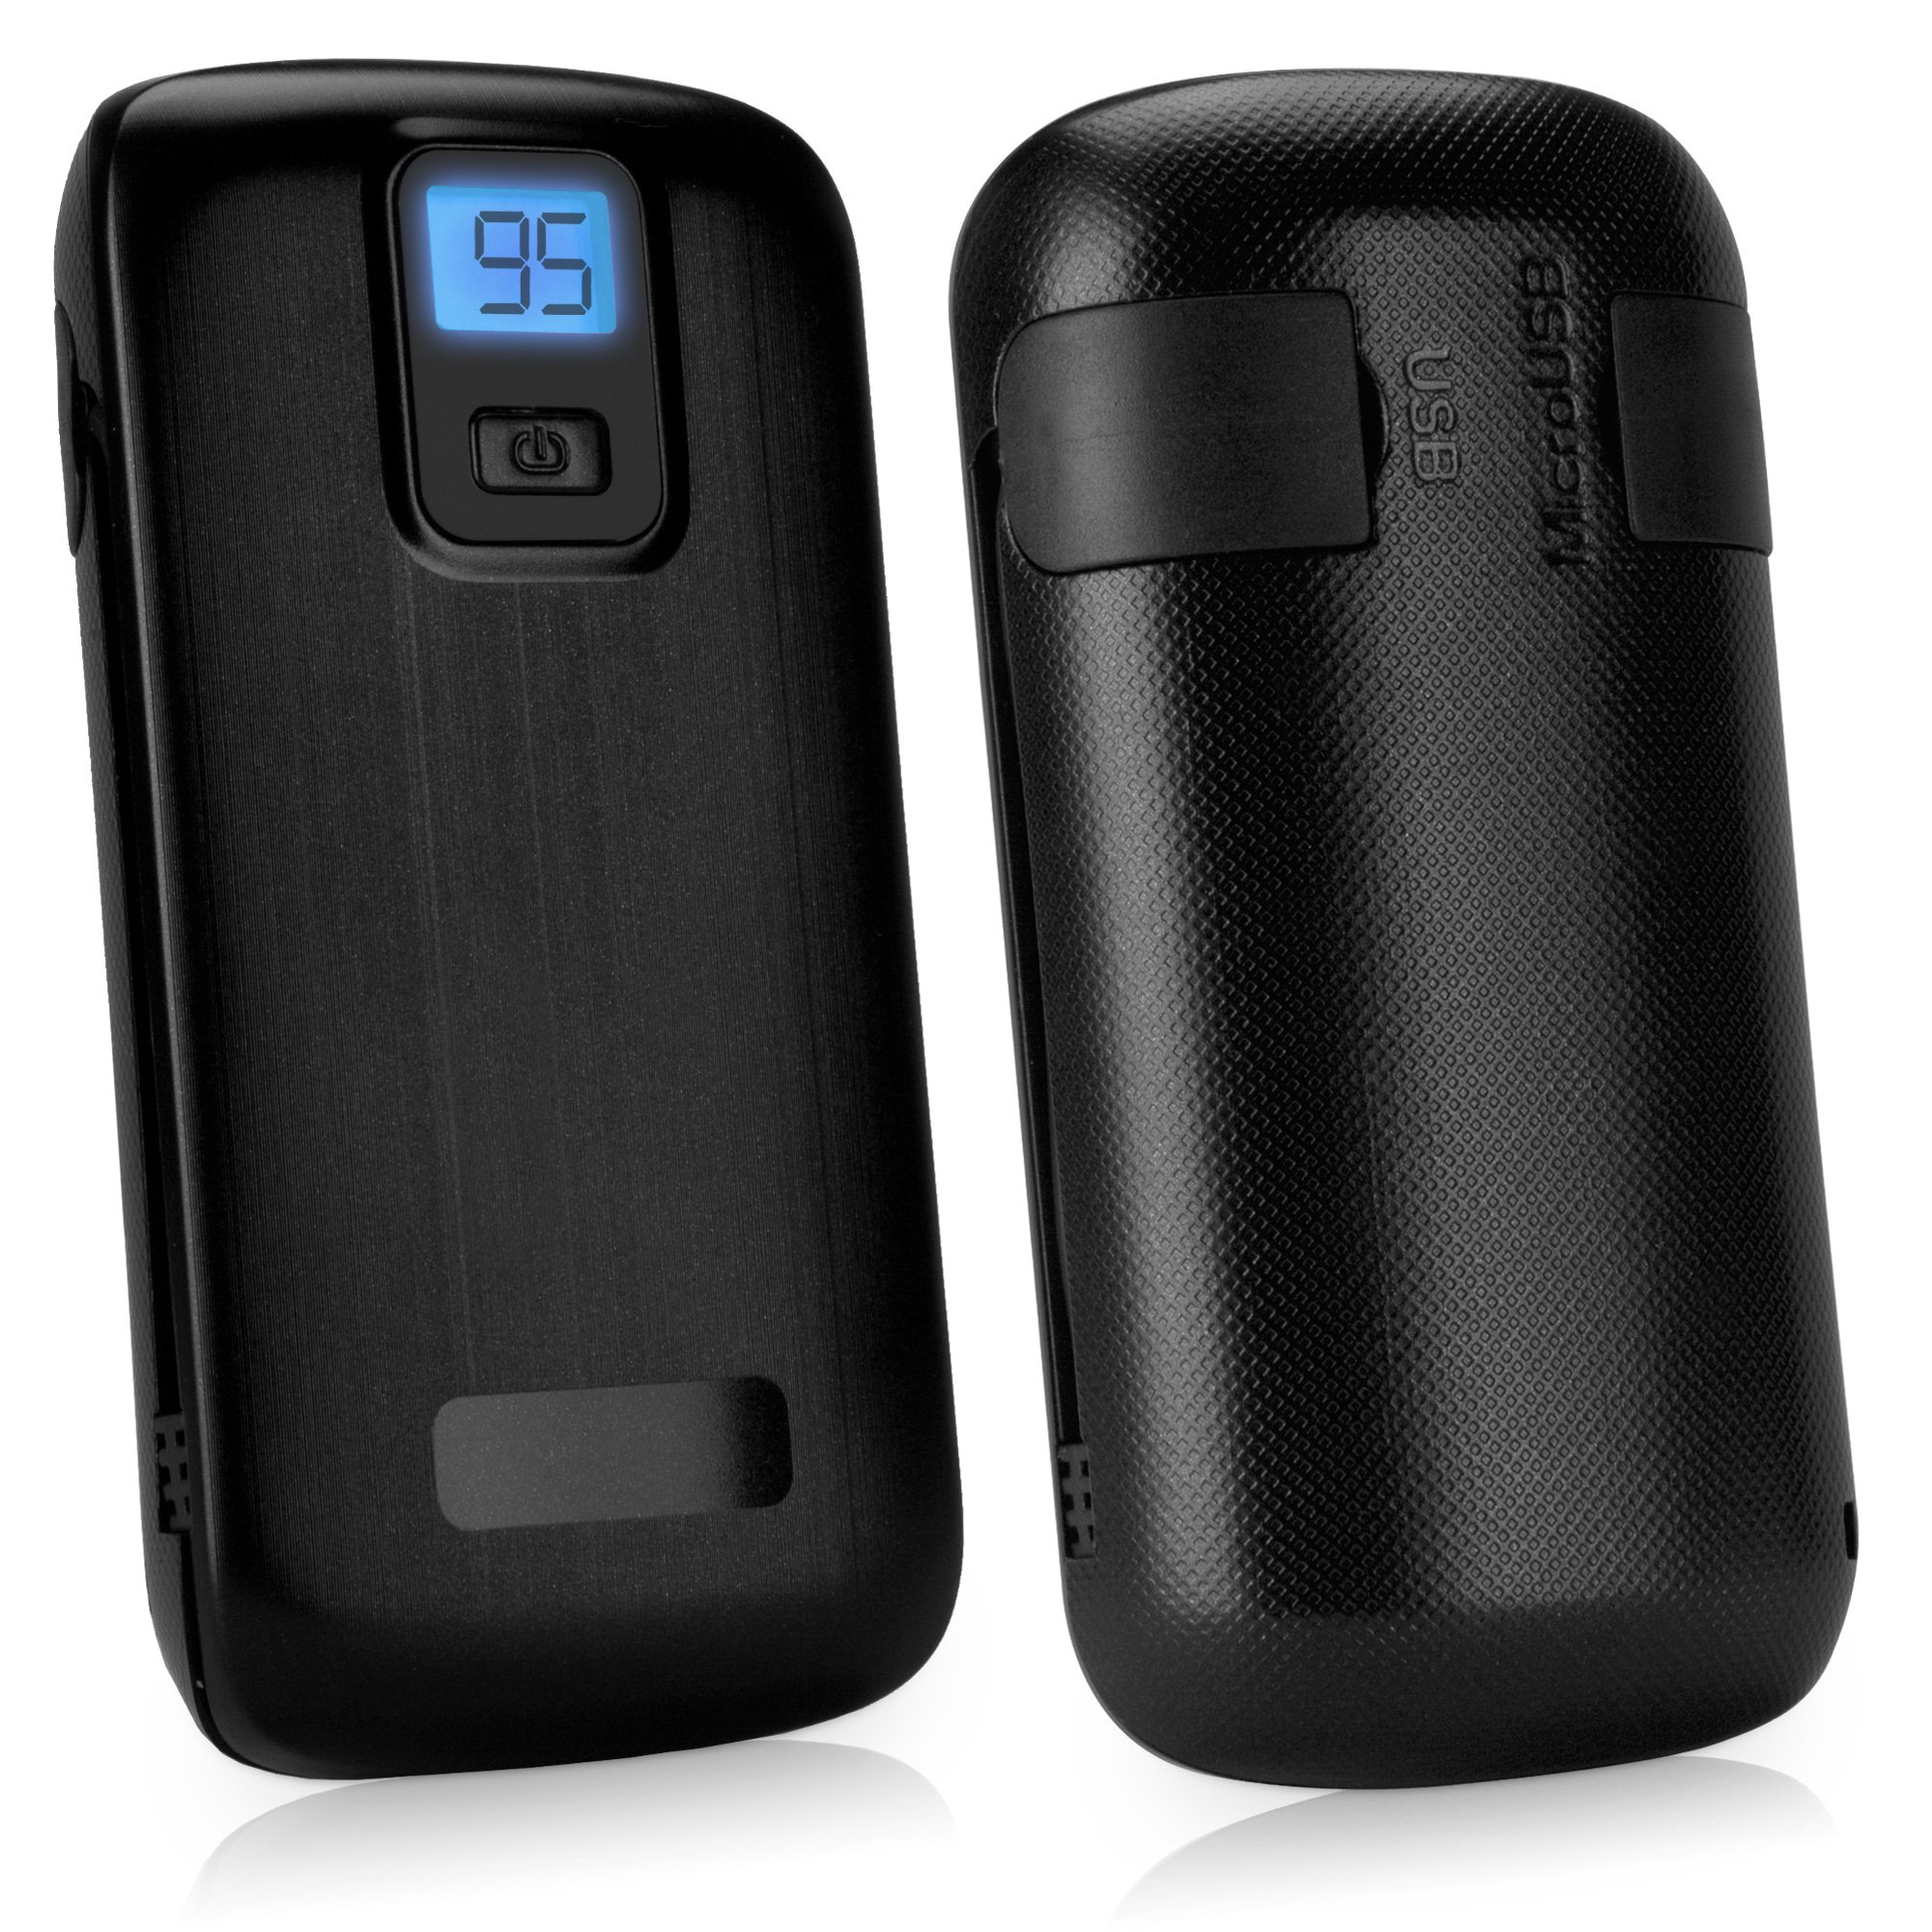 BoxWave Rejuva Power Pack Pro Power Bank - Compact, Portable 4,400 mAh Rechargeable Li-ion Battery Charger and Power Bank - Compatible with Apple iPhone 5, iPhone 6, iPad 3, iPad 4, iPad Air, Samsung Galaxy S4, Galaxy S5, OnePlus One, and many more! (Blac by BoxWave (Image #3)